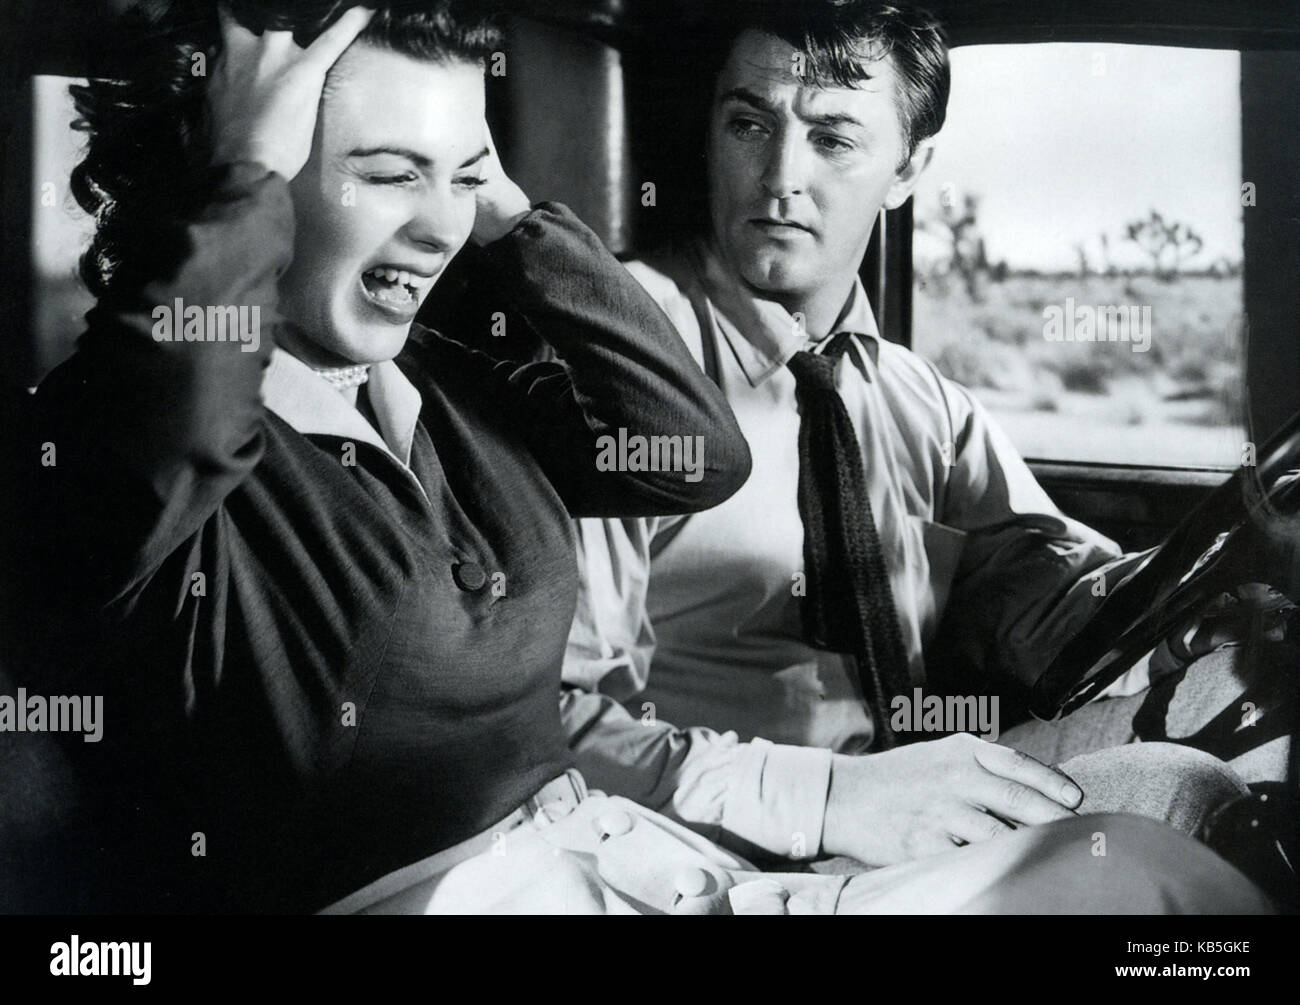 WHERE DANGER LIVES 1950 RKO Radio Pictures film with Robert Mitchum and Faith Domergue - Stock Image